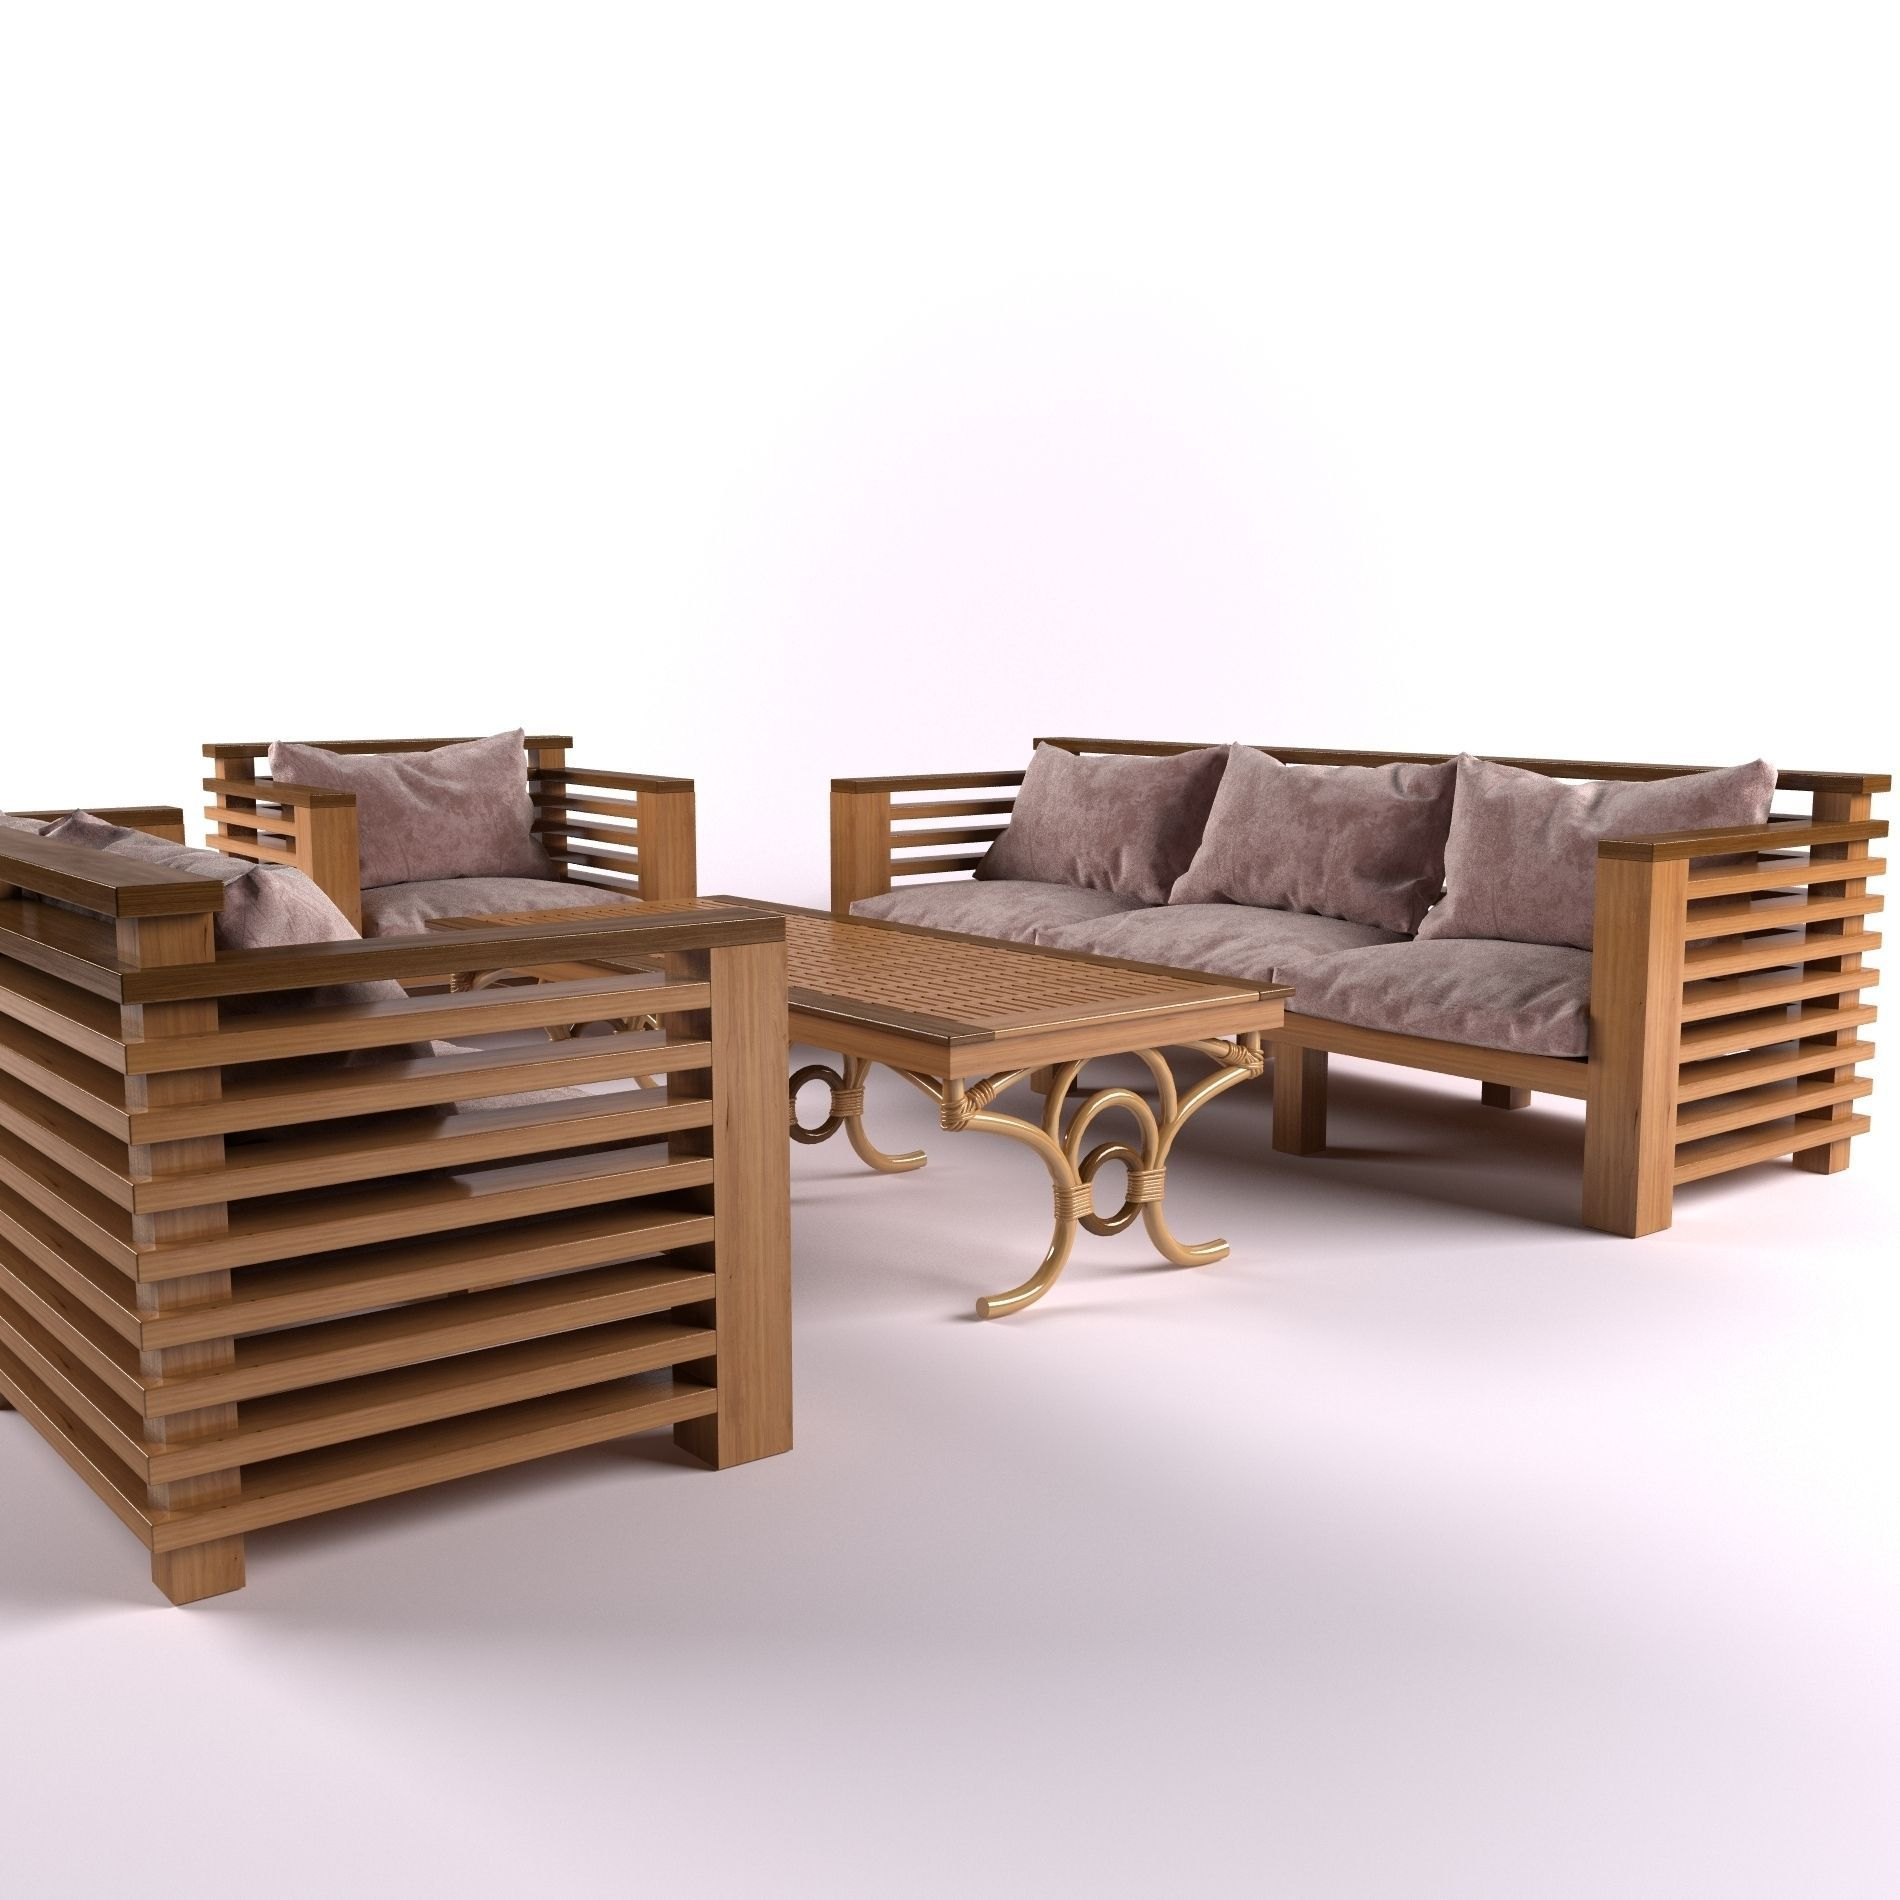 garden furniture 3d model max obj mtl 4